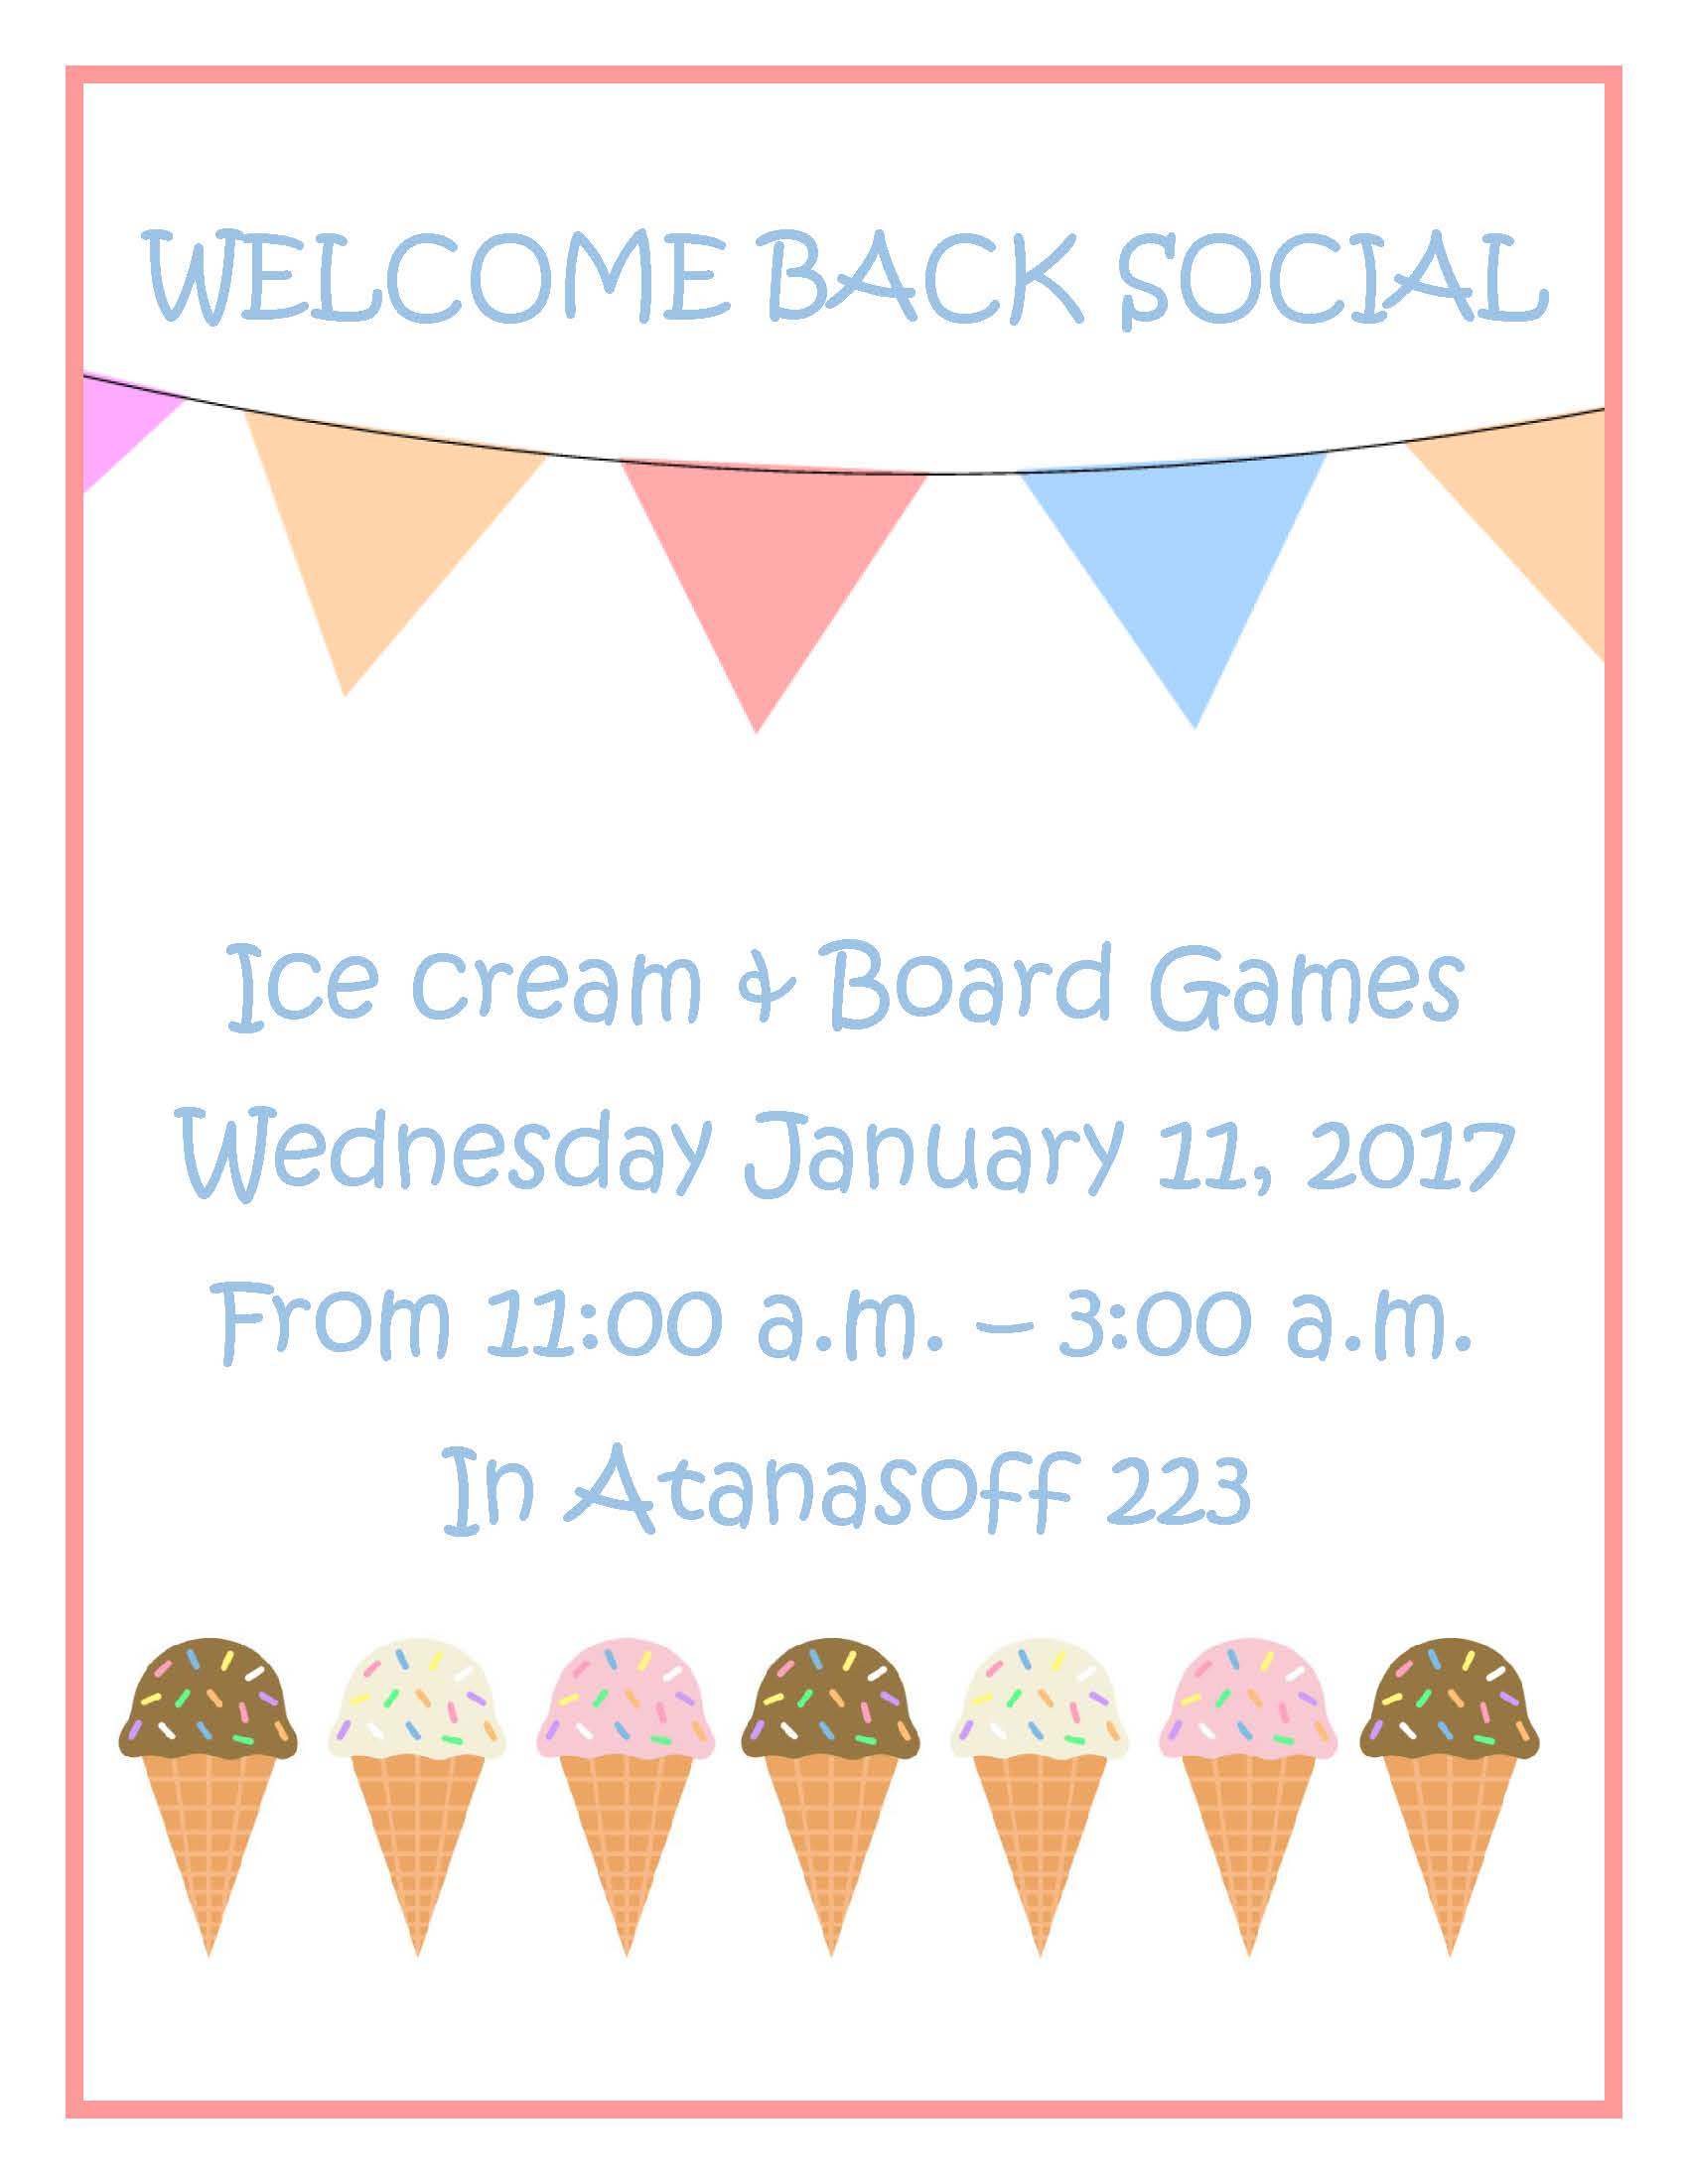 Ice cream and board games Wednesday, January 11, 2017 from 11:00am-3:00am